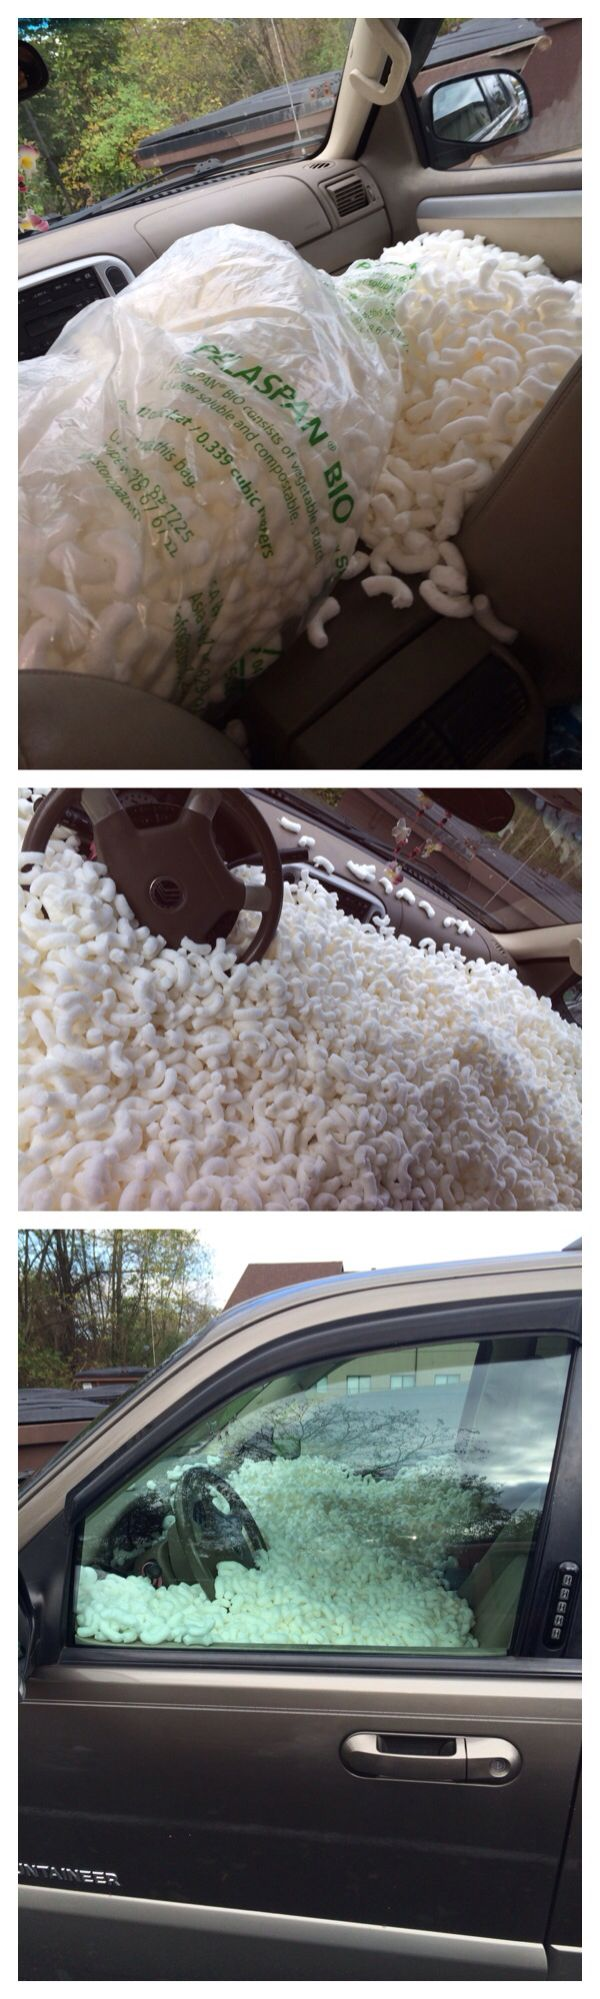 Packing peanuts car prank